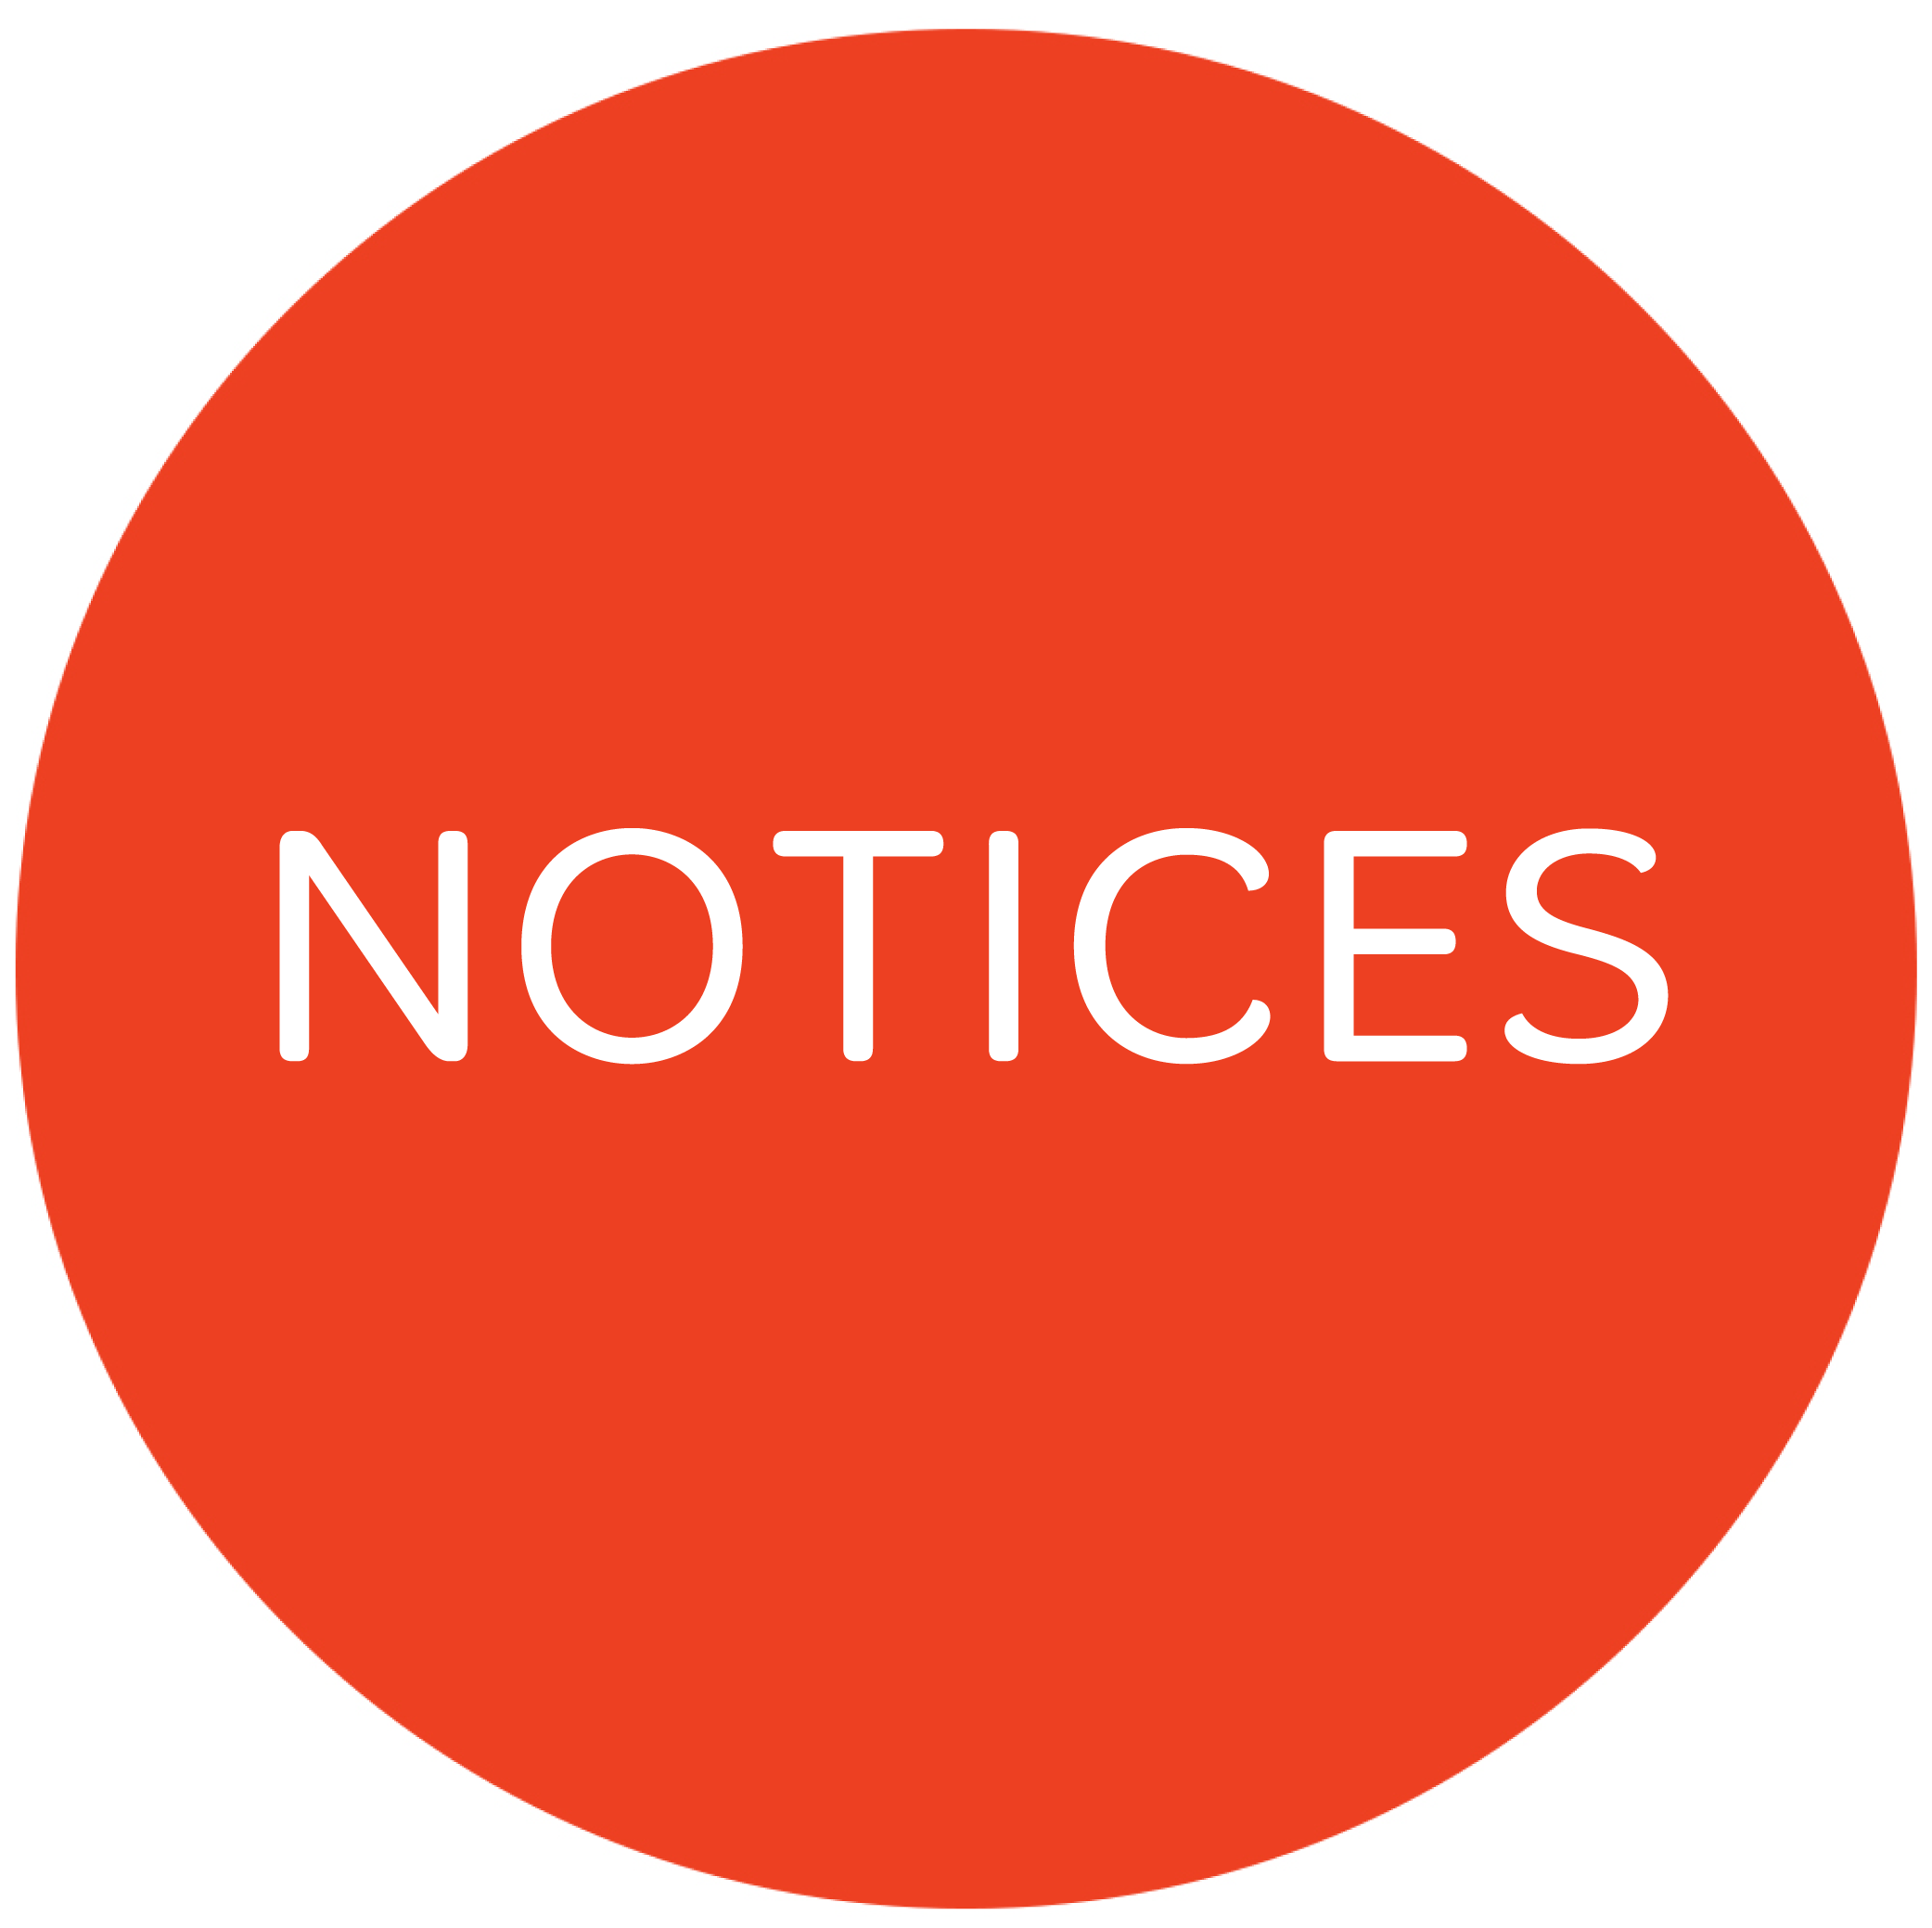 Notices- 7 October 2018